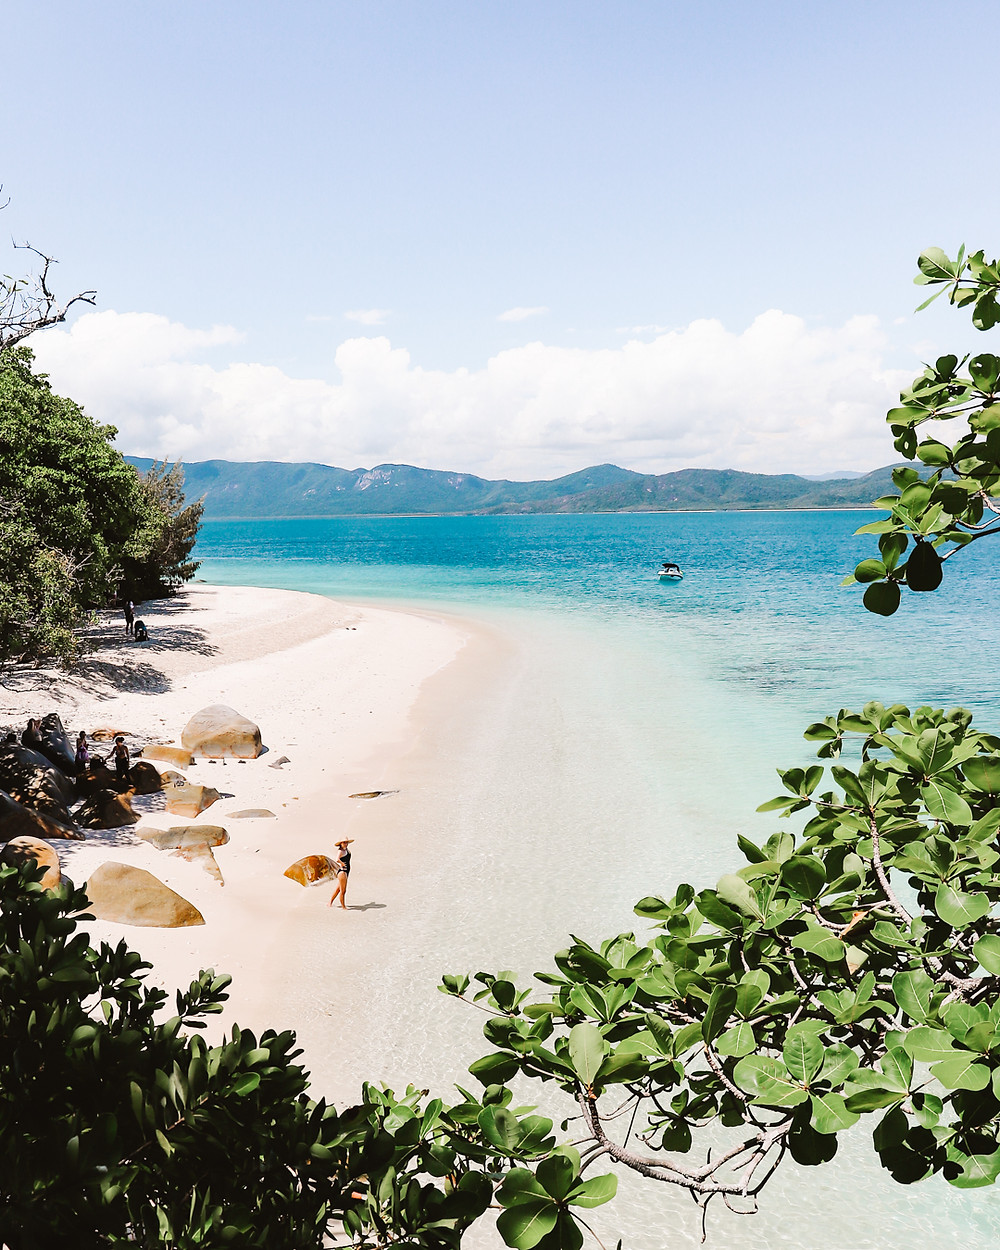 Visit Tropical North Queensland to see places like Port Douglas, Cairns, Palm Cove, Atherton Tableland, Millaa Millaa Falls and many more!